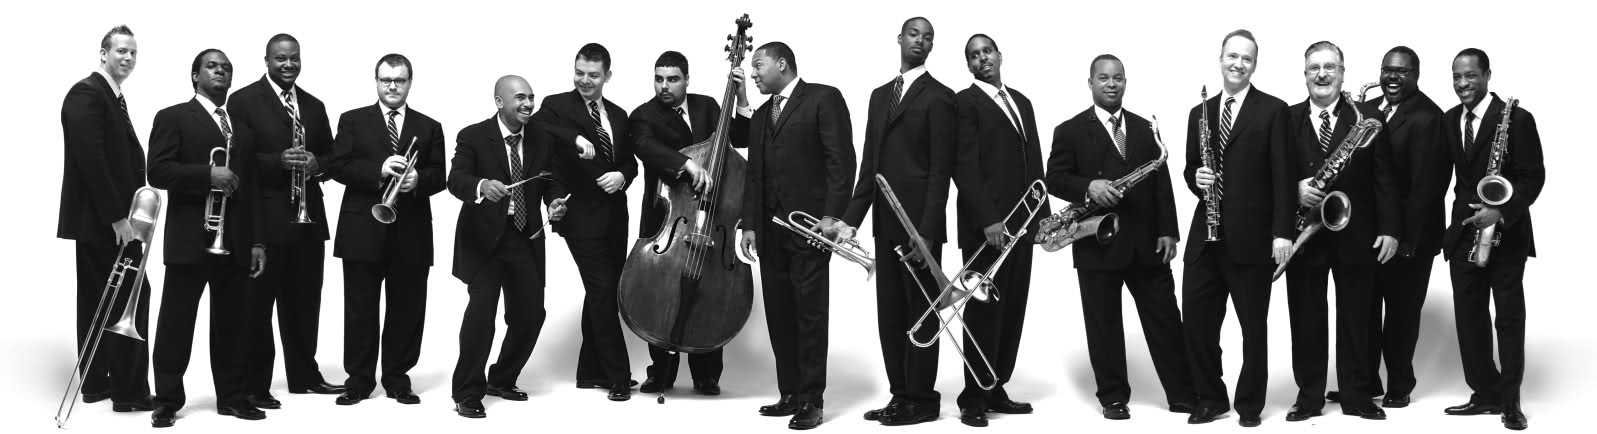 LINCOLN CENTER JAZZ ORCHESTRA / THE JAZZ AT LINCOLN CENTER ORCHESTRA picture